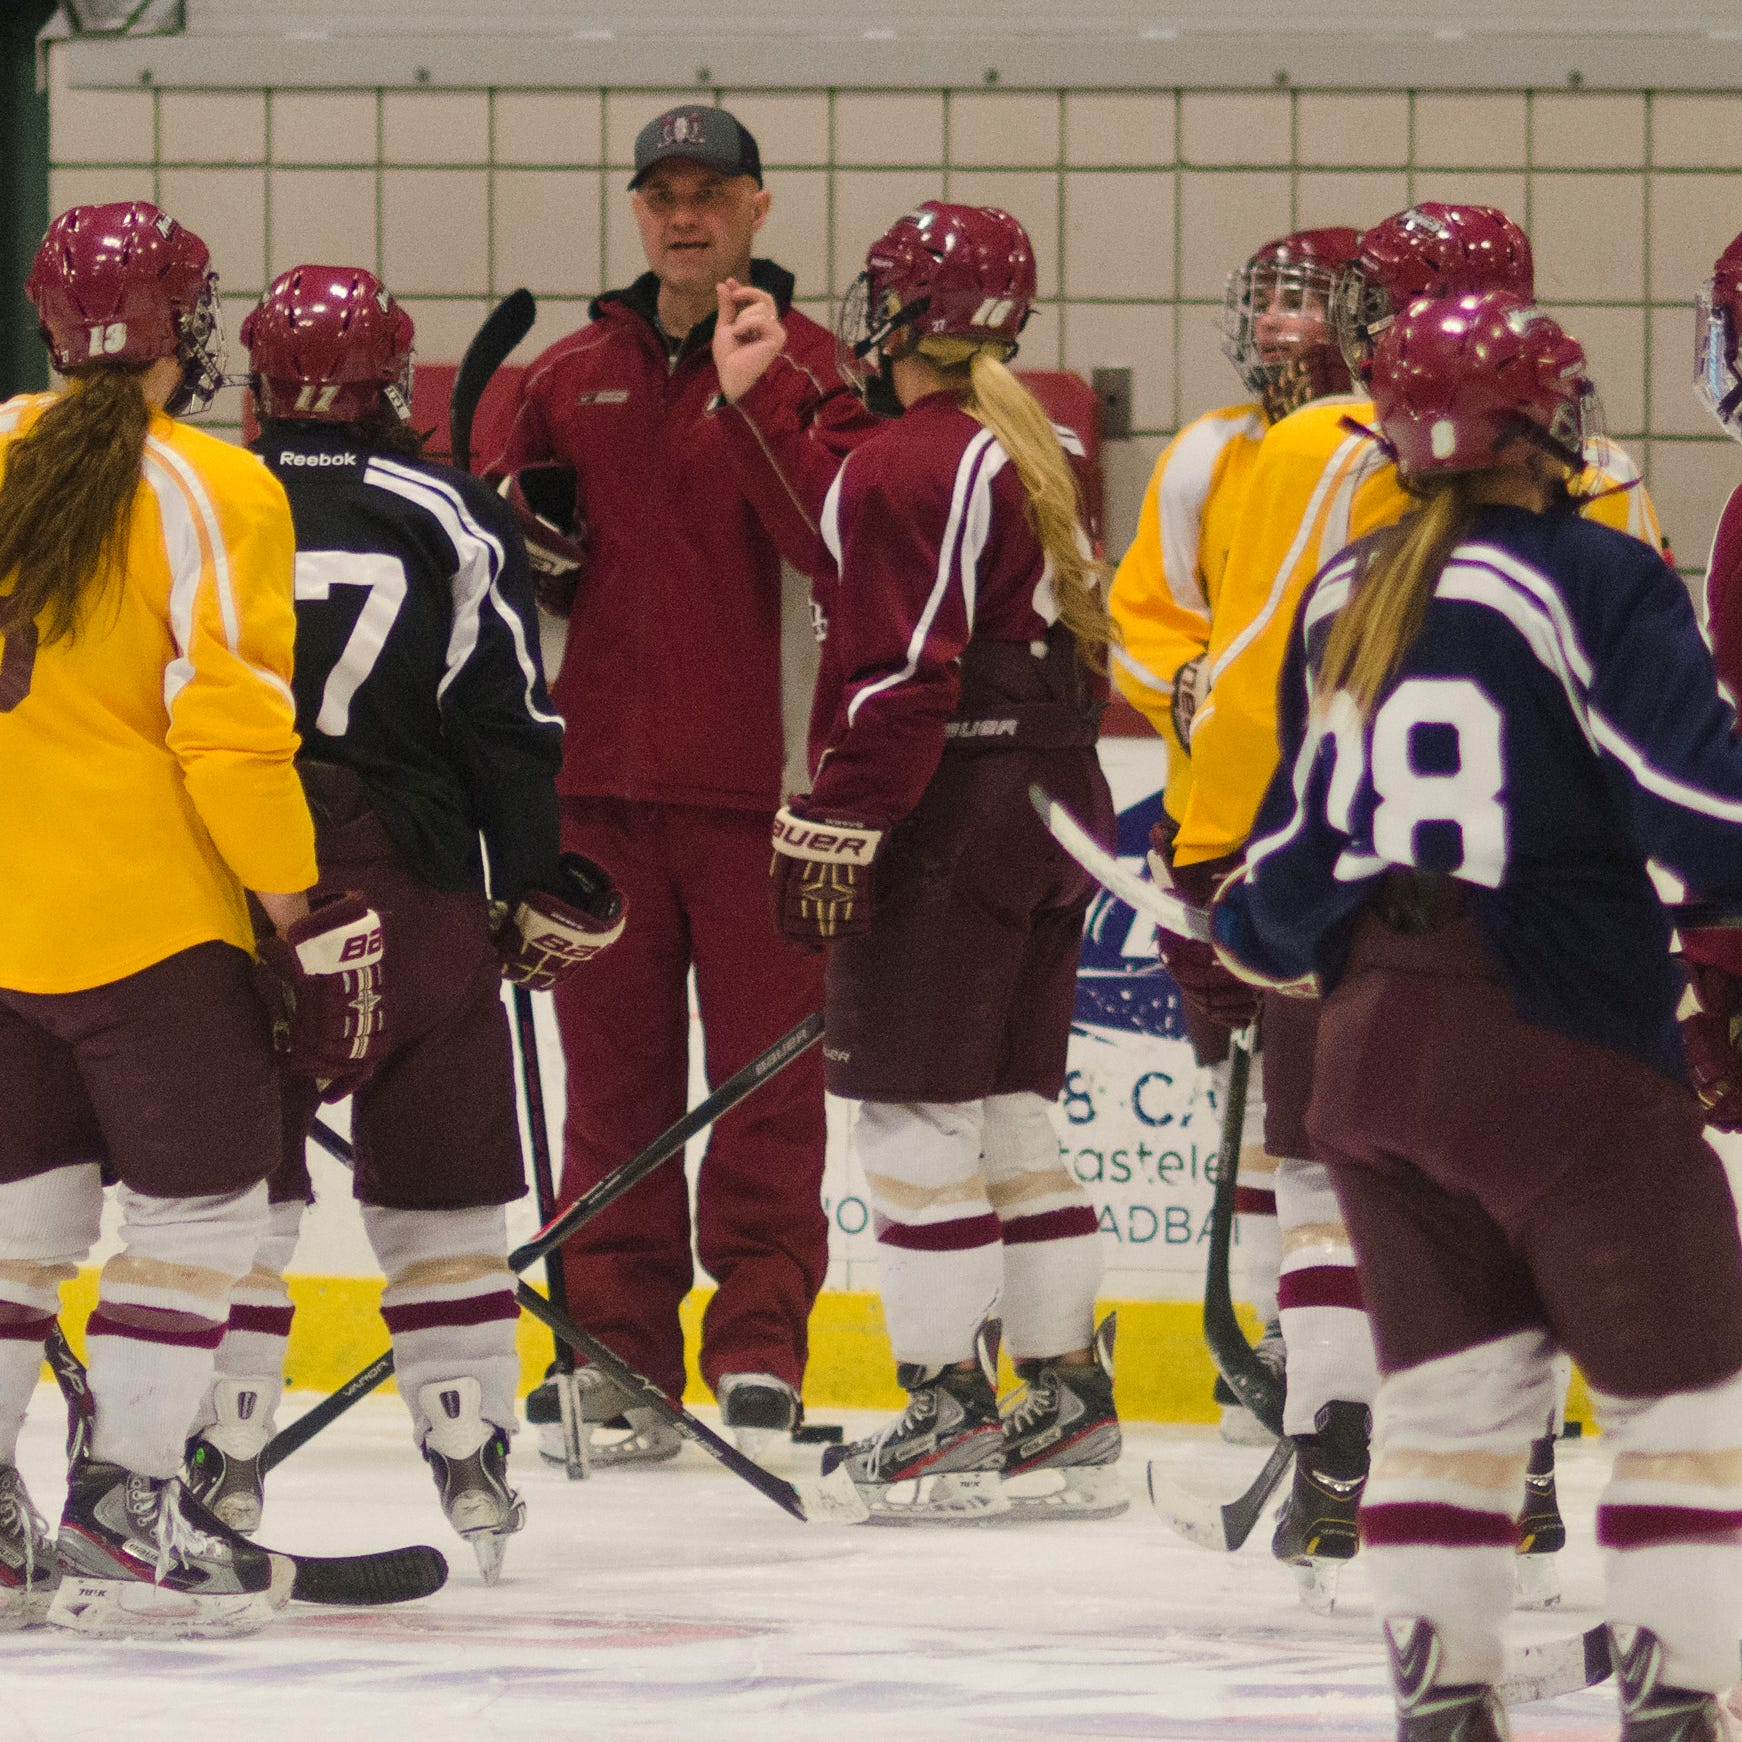 Norwich women's hockey coach Mark Bolding headed to Yale